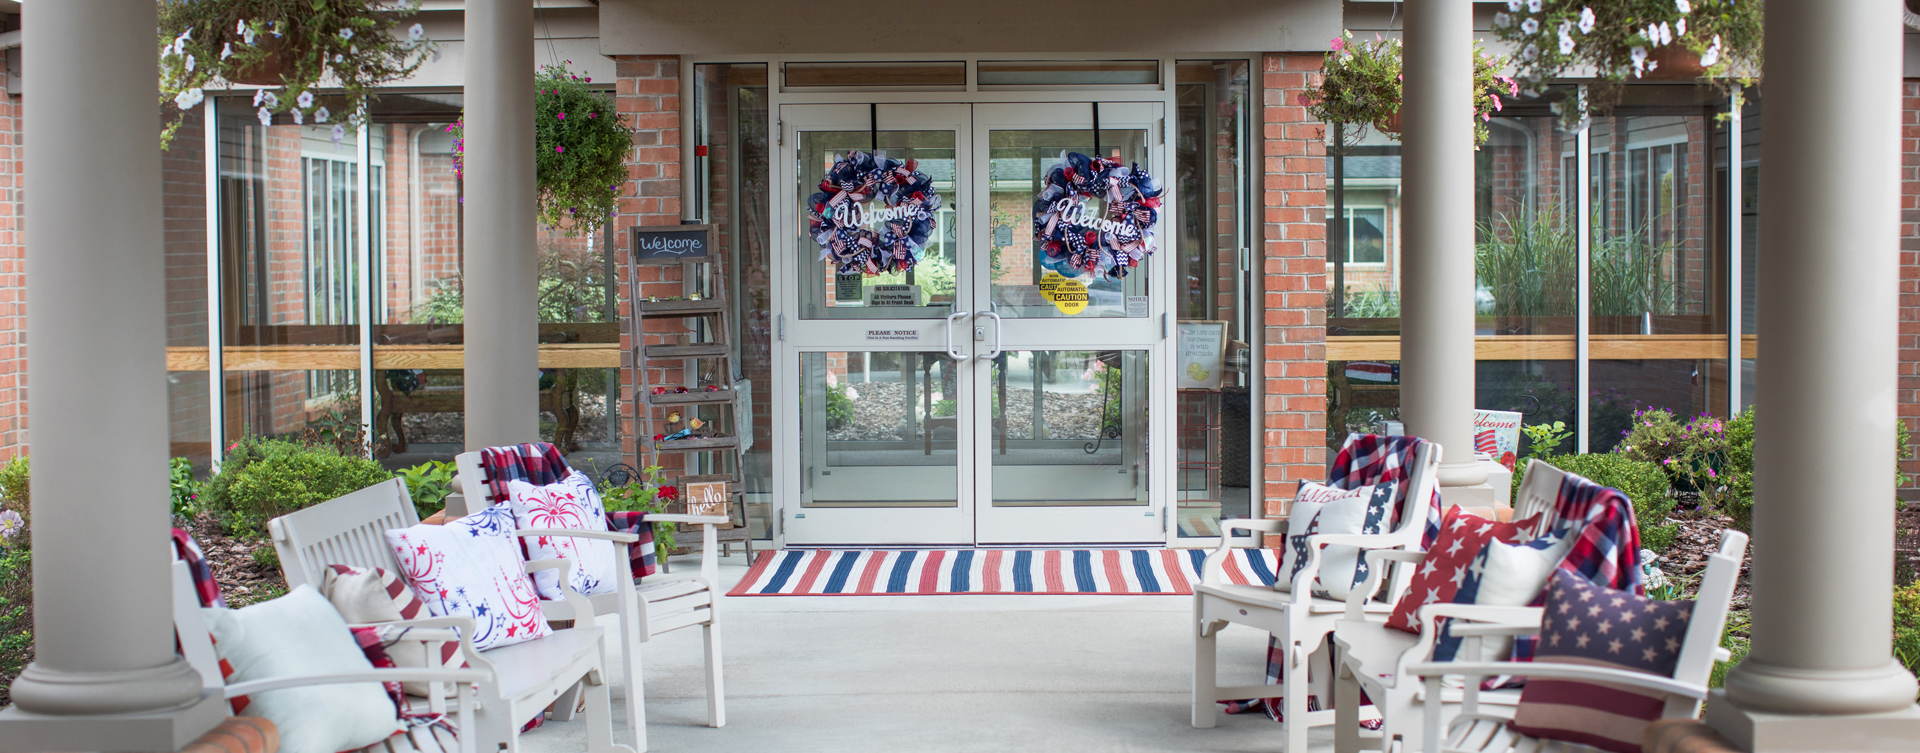 Enjoy conversations with friends on the porch at Bickford of Lancaster